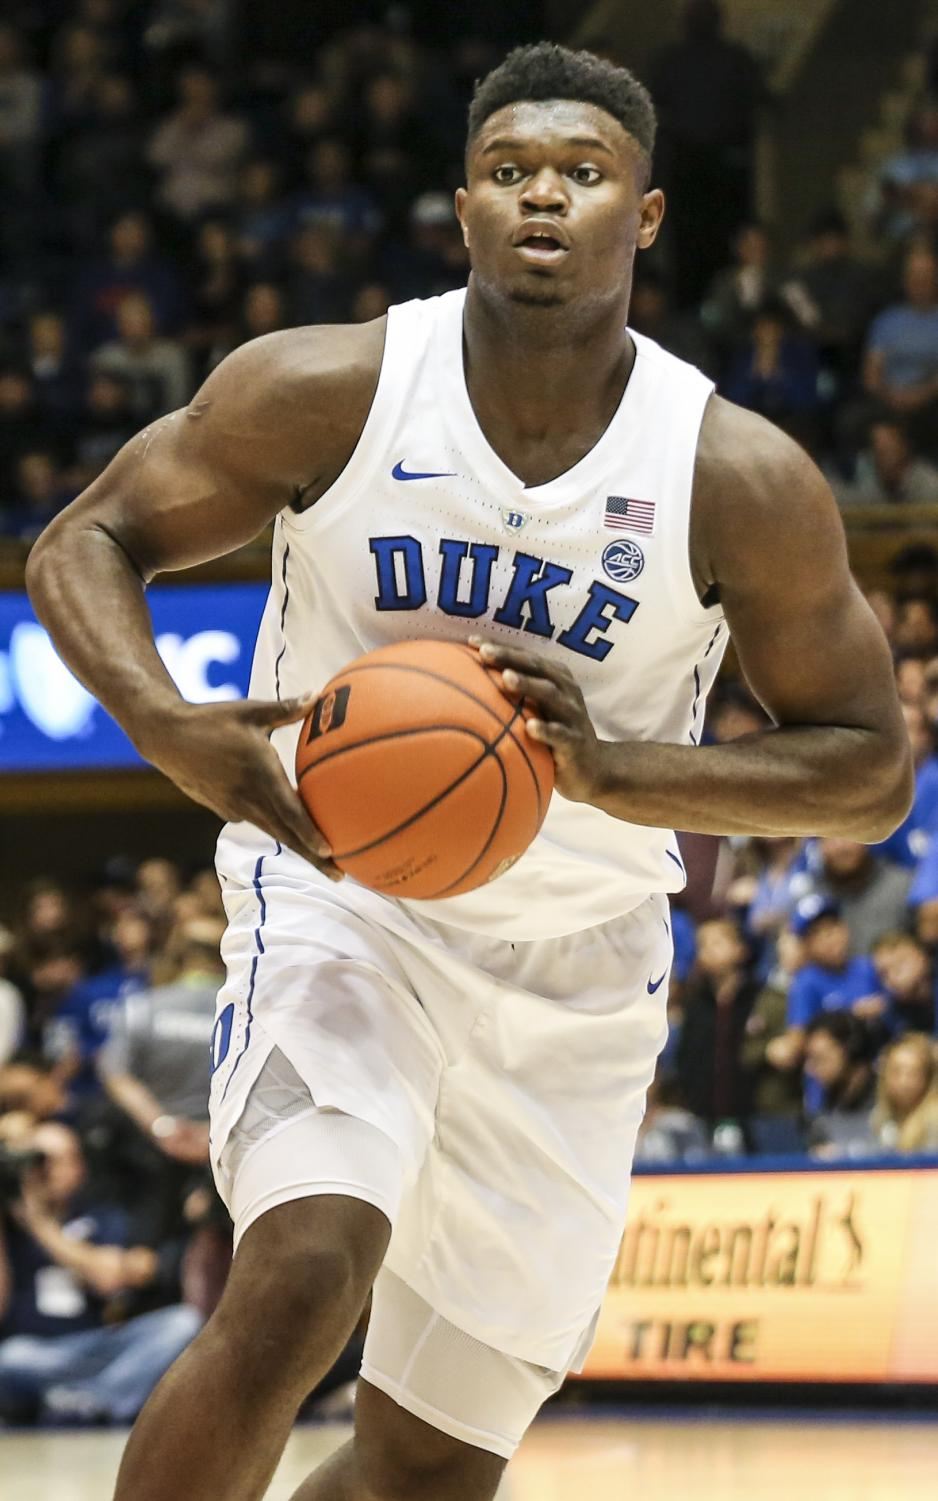 Zion Williamson looks to pass in a Duke exhibition game. Prominent players like him will be able to secure endorsements in college.